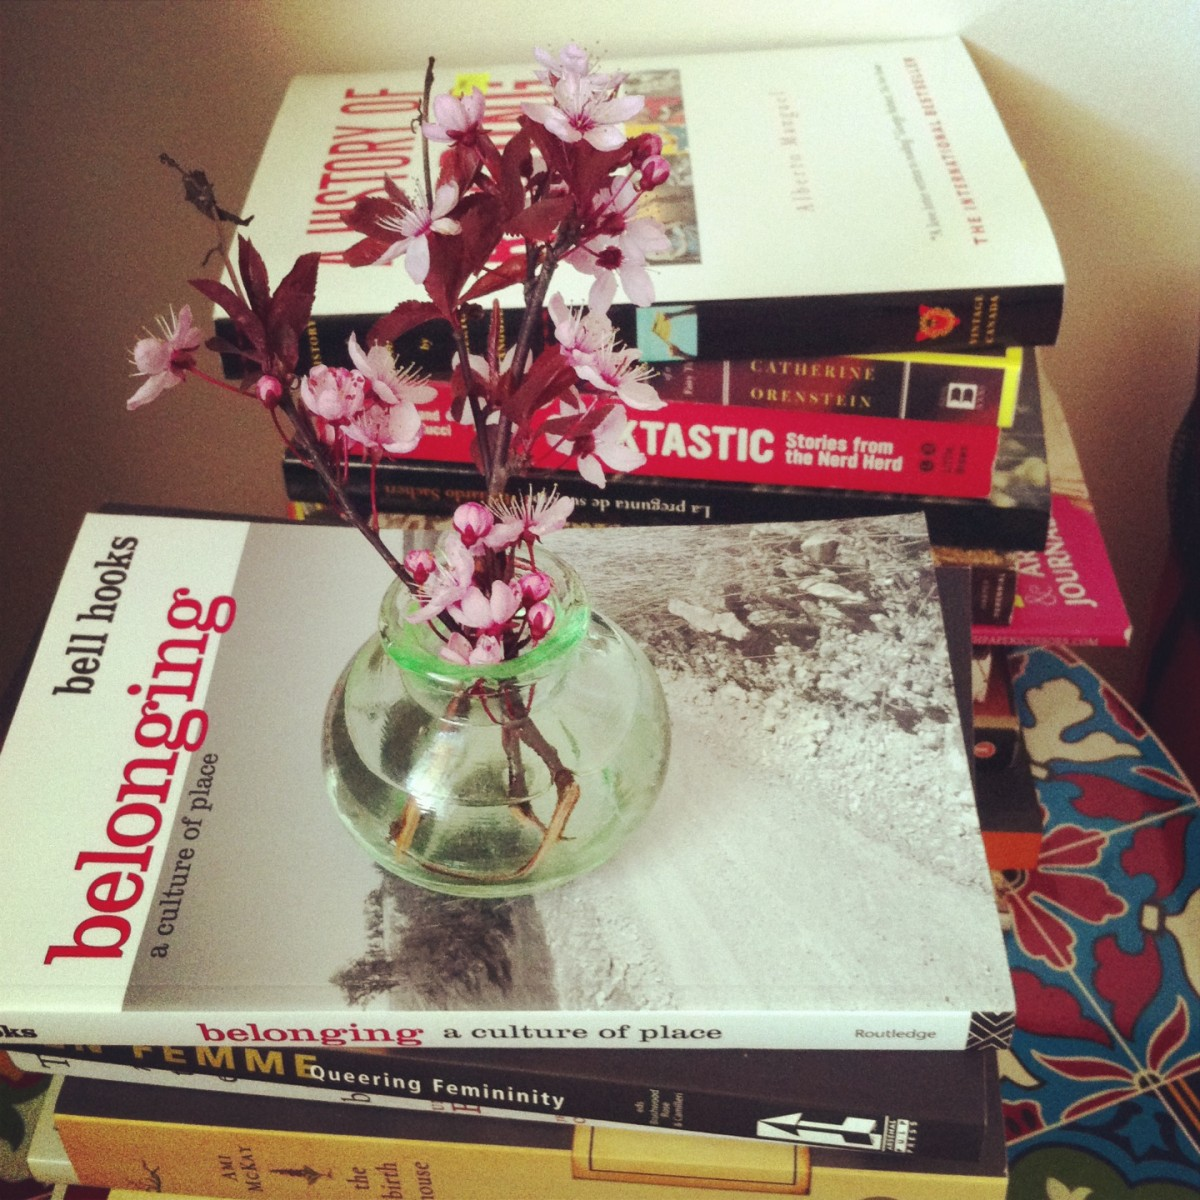 Two stacks of books, one in front of the other, one pile has a small clear flower vase with small pink flowers on top of it